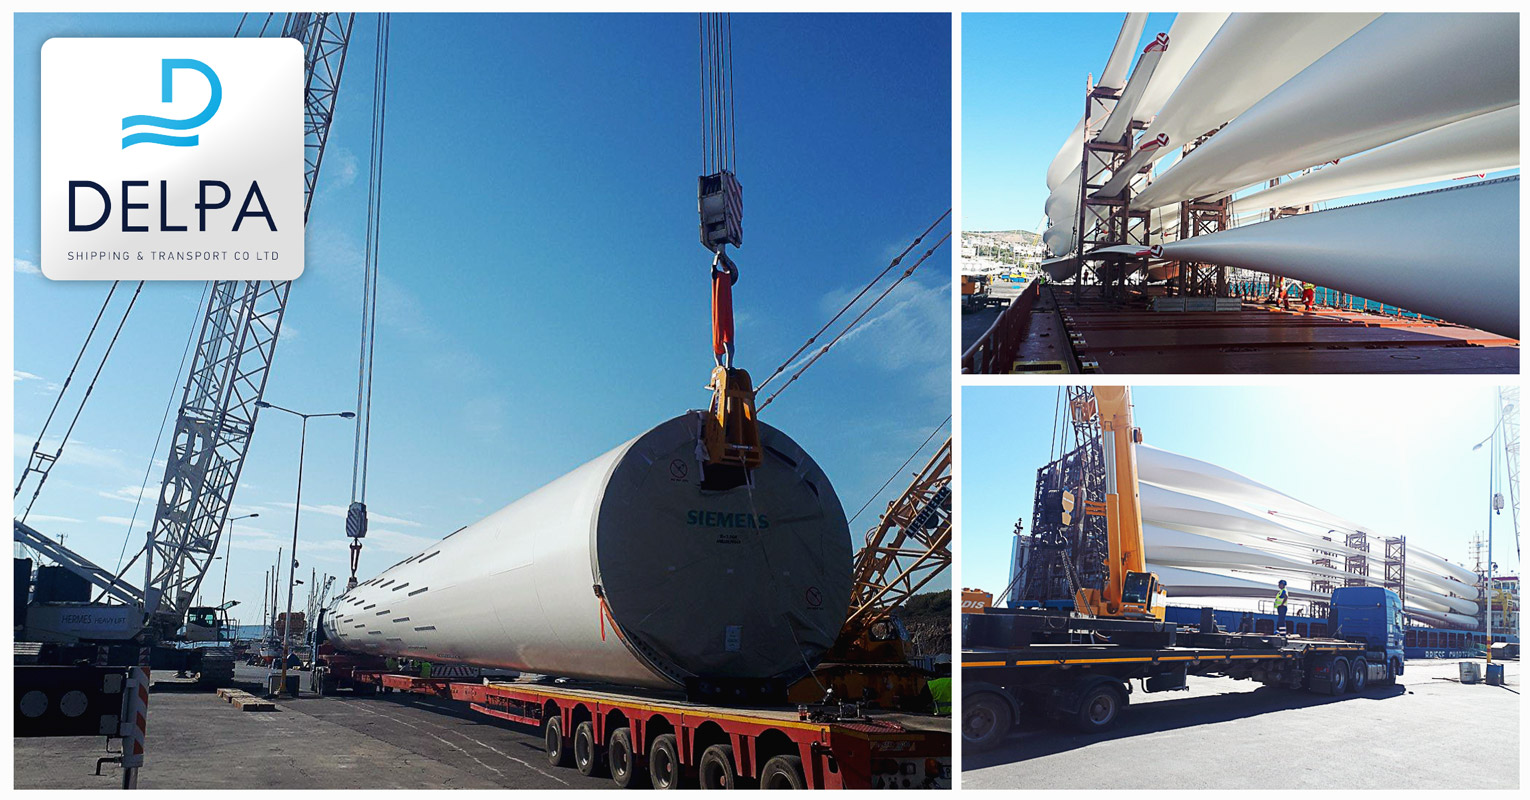 Delpa Shipping & Transport Co Ltd - Wind Turbine Transport Projects